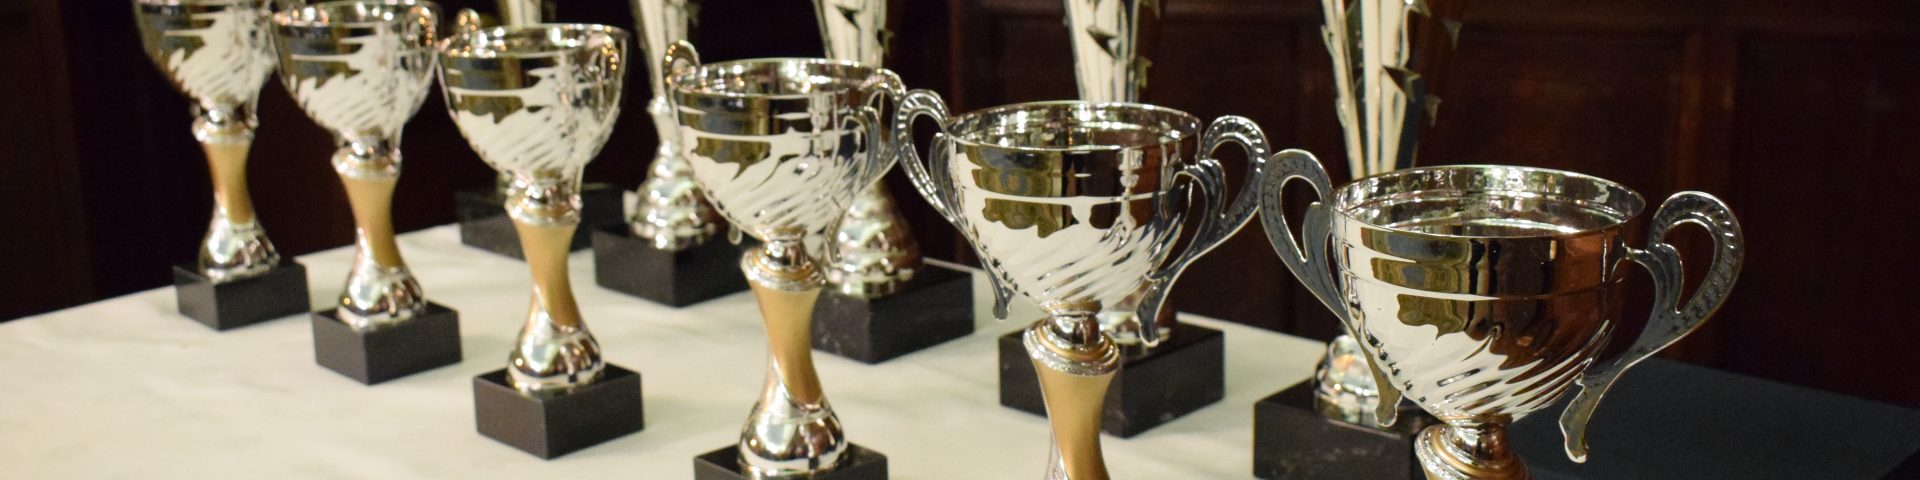 Sports awards trophies